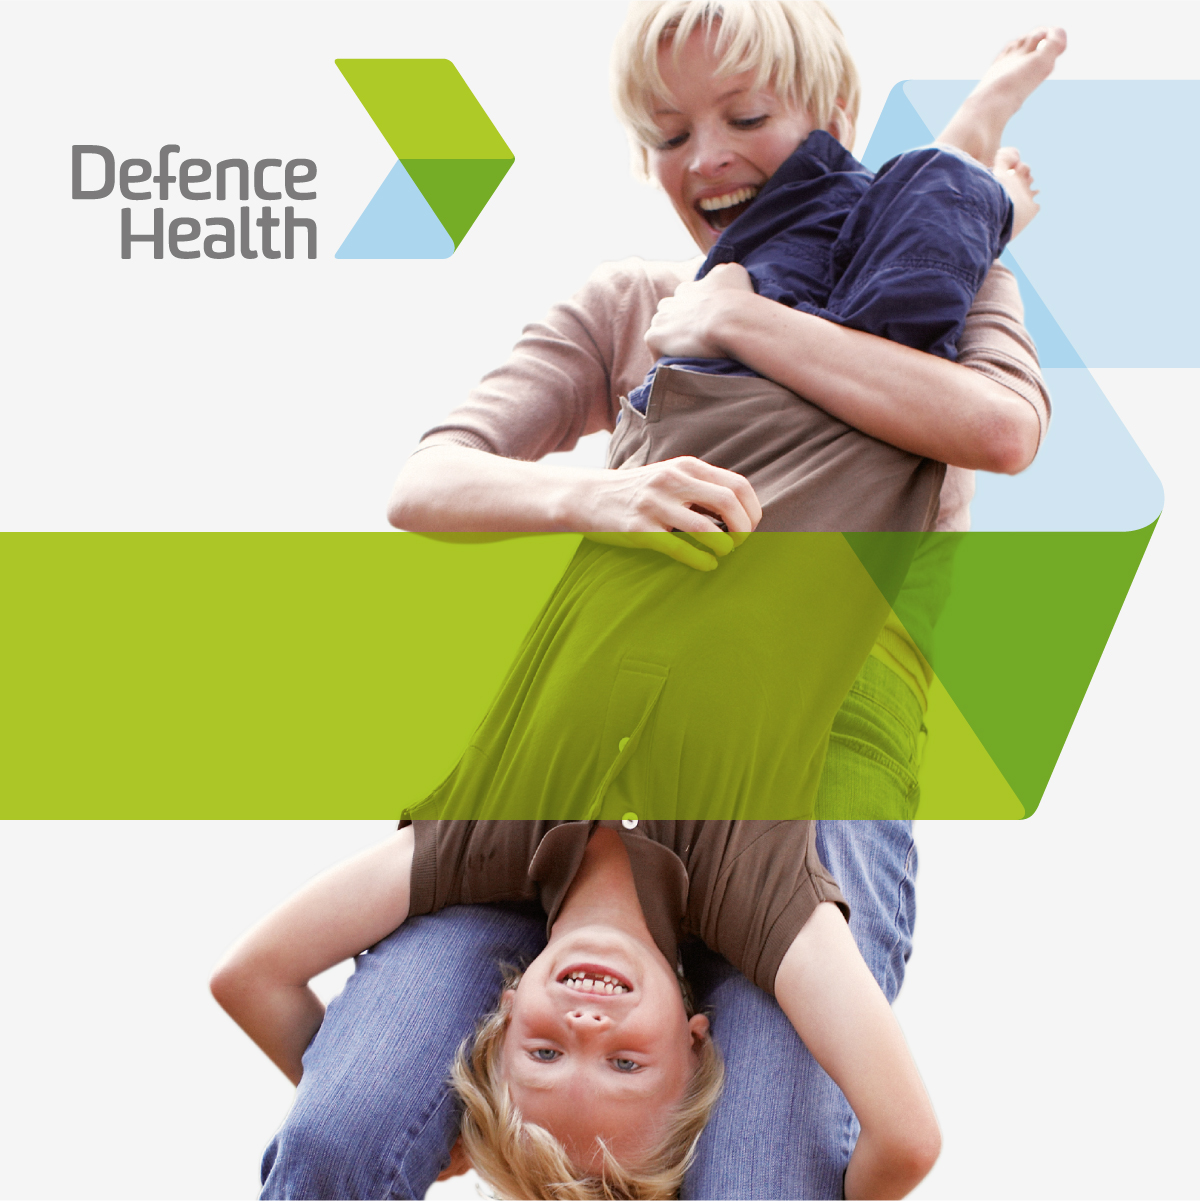 Defence Health Brand Identity, Brand Strategy and Design